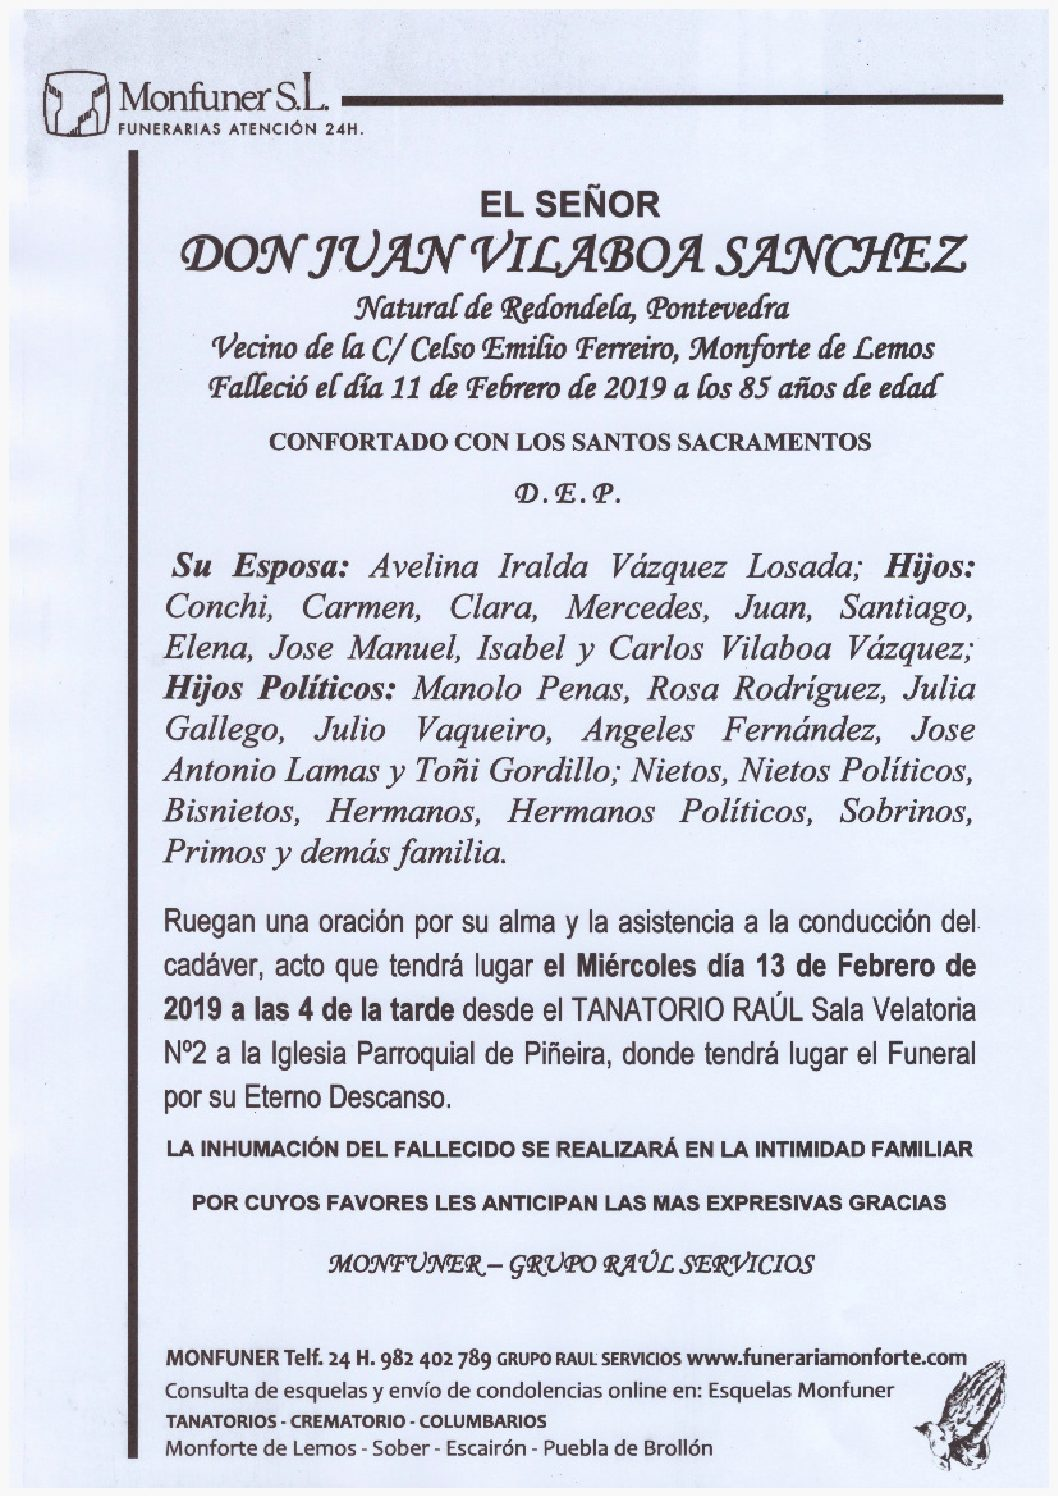 DON JUAN VILABOA SANCHEZ